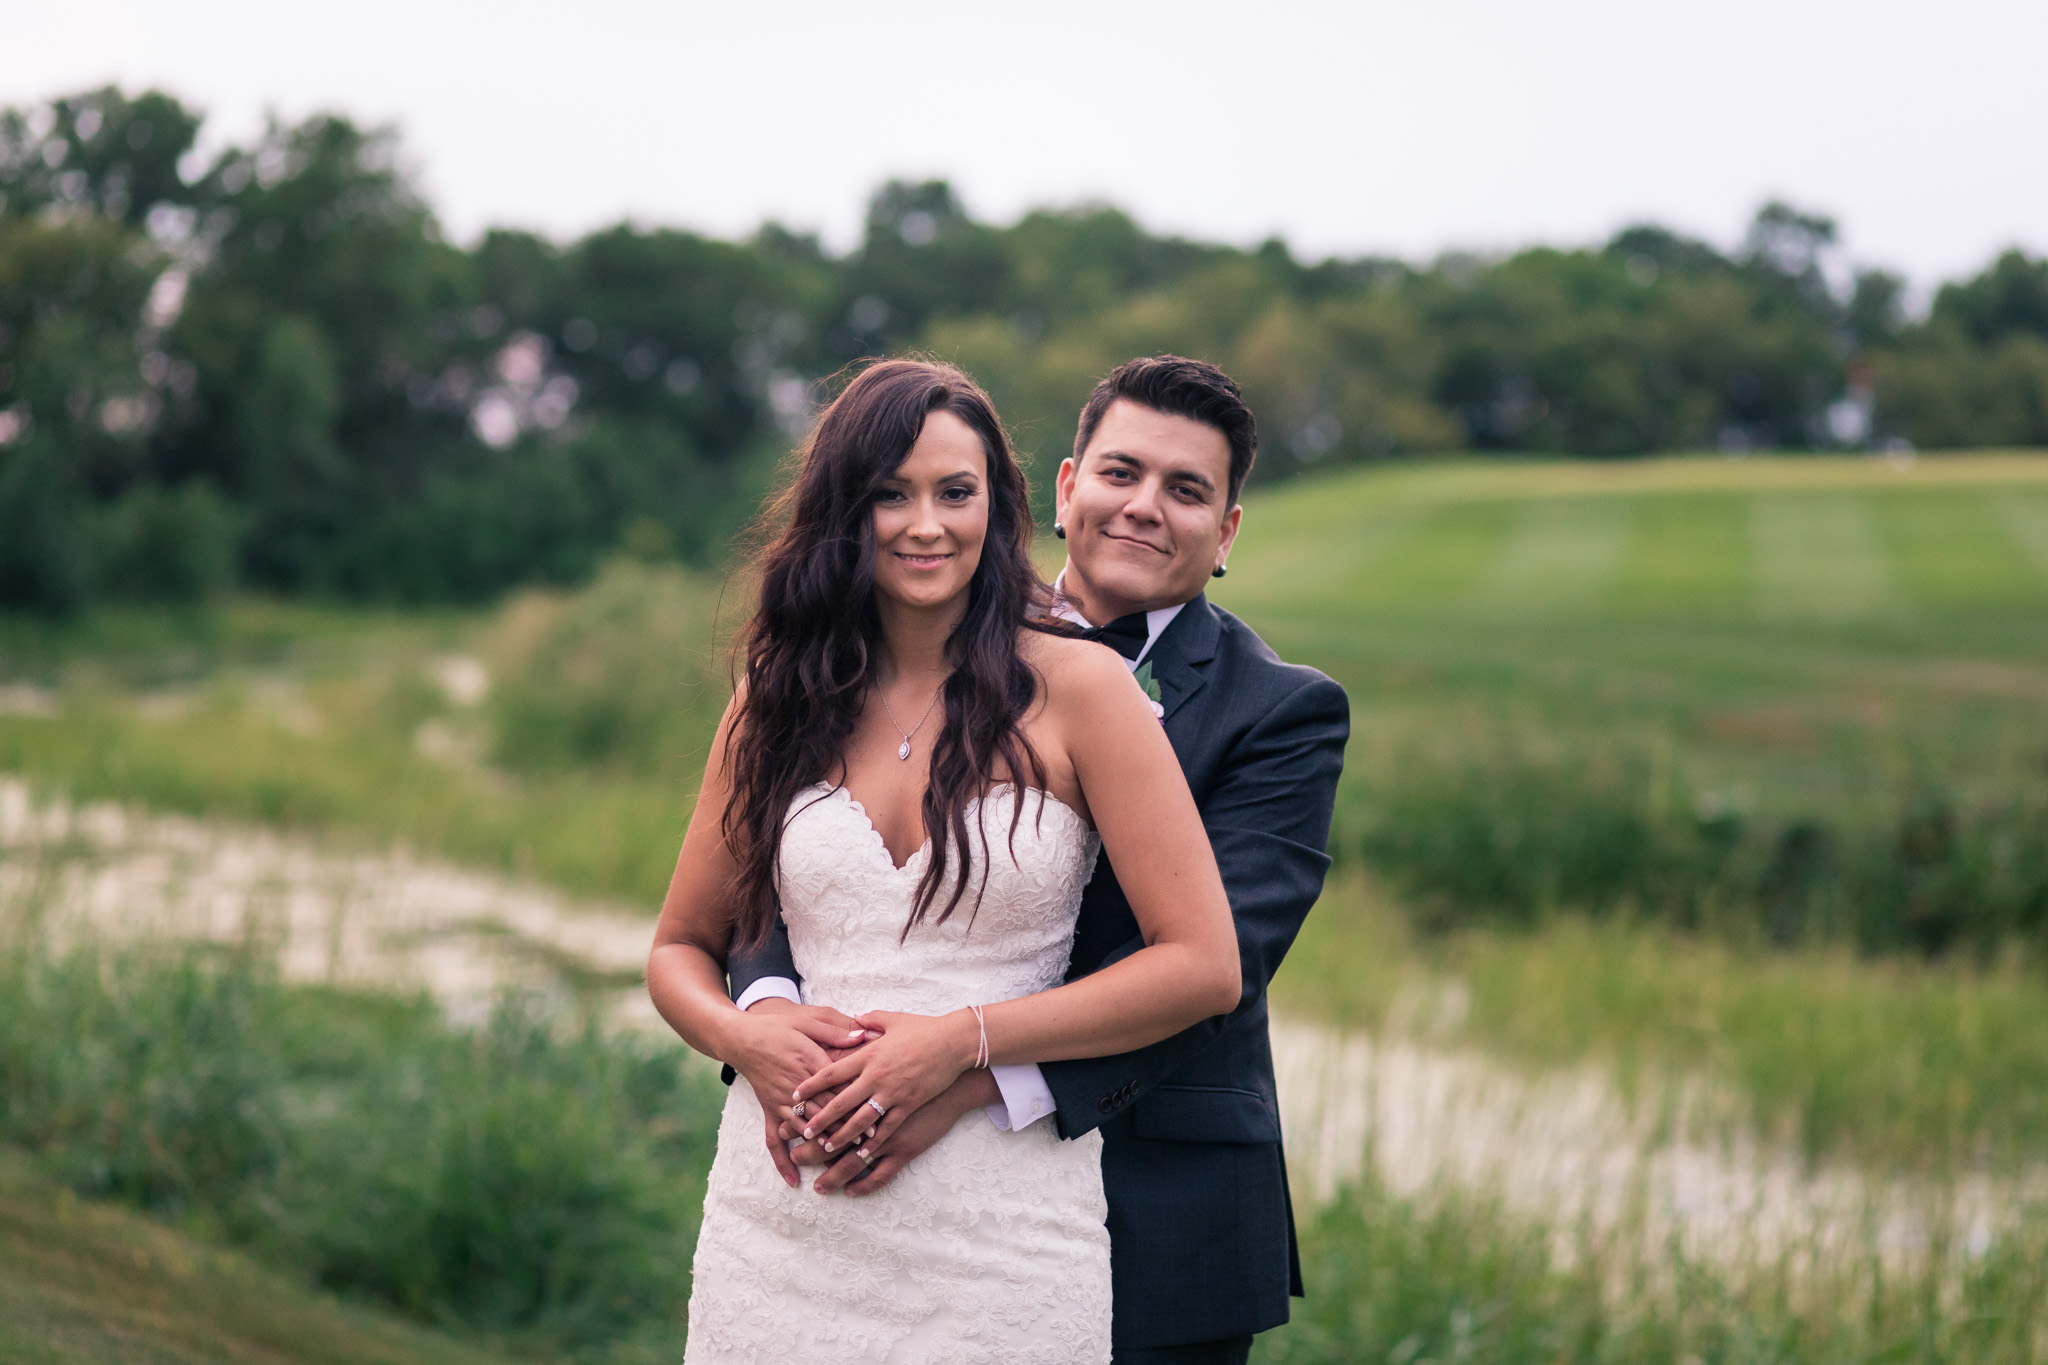 Bridge's-golf-club-wedding-winnipeg-99.jpg